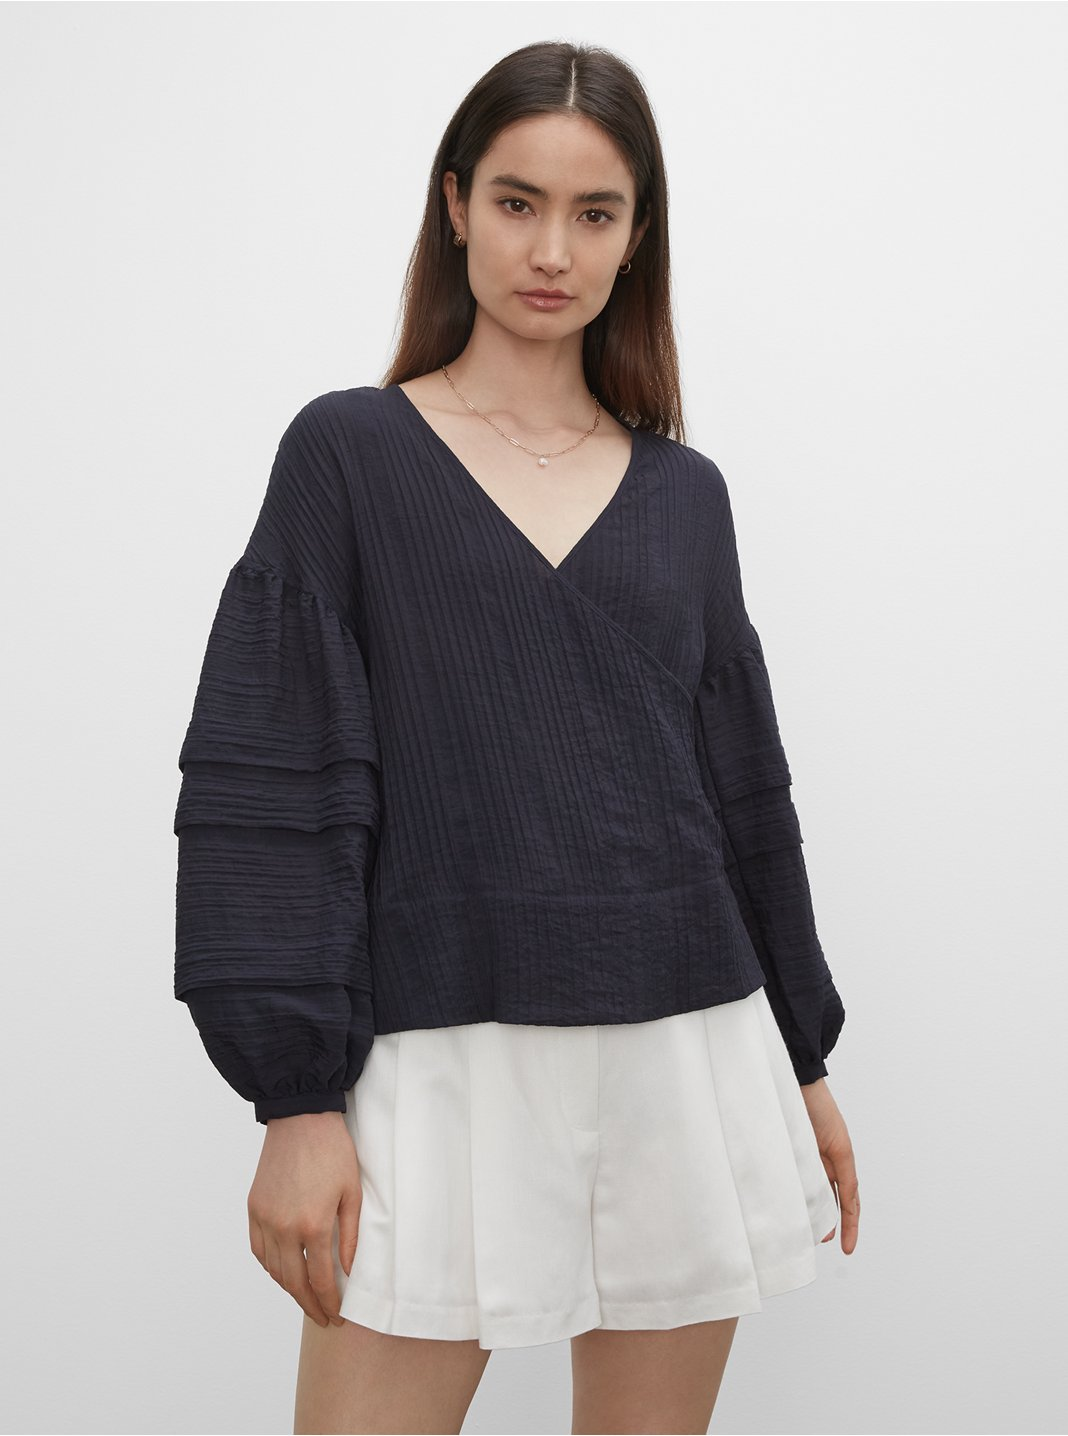 Tuck Sleeve Wrap Top